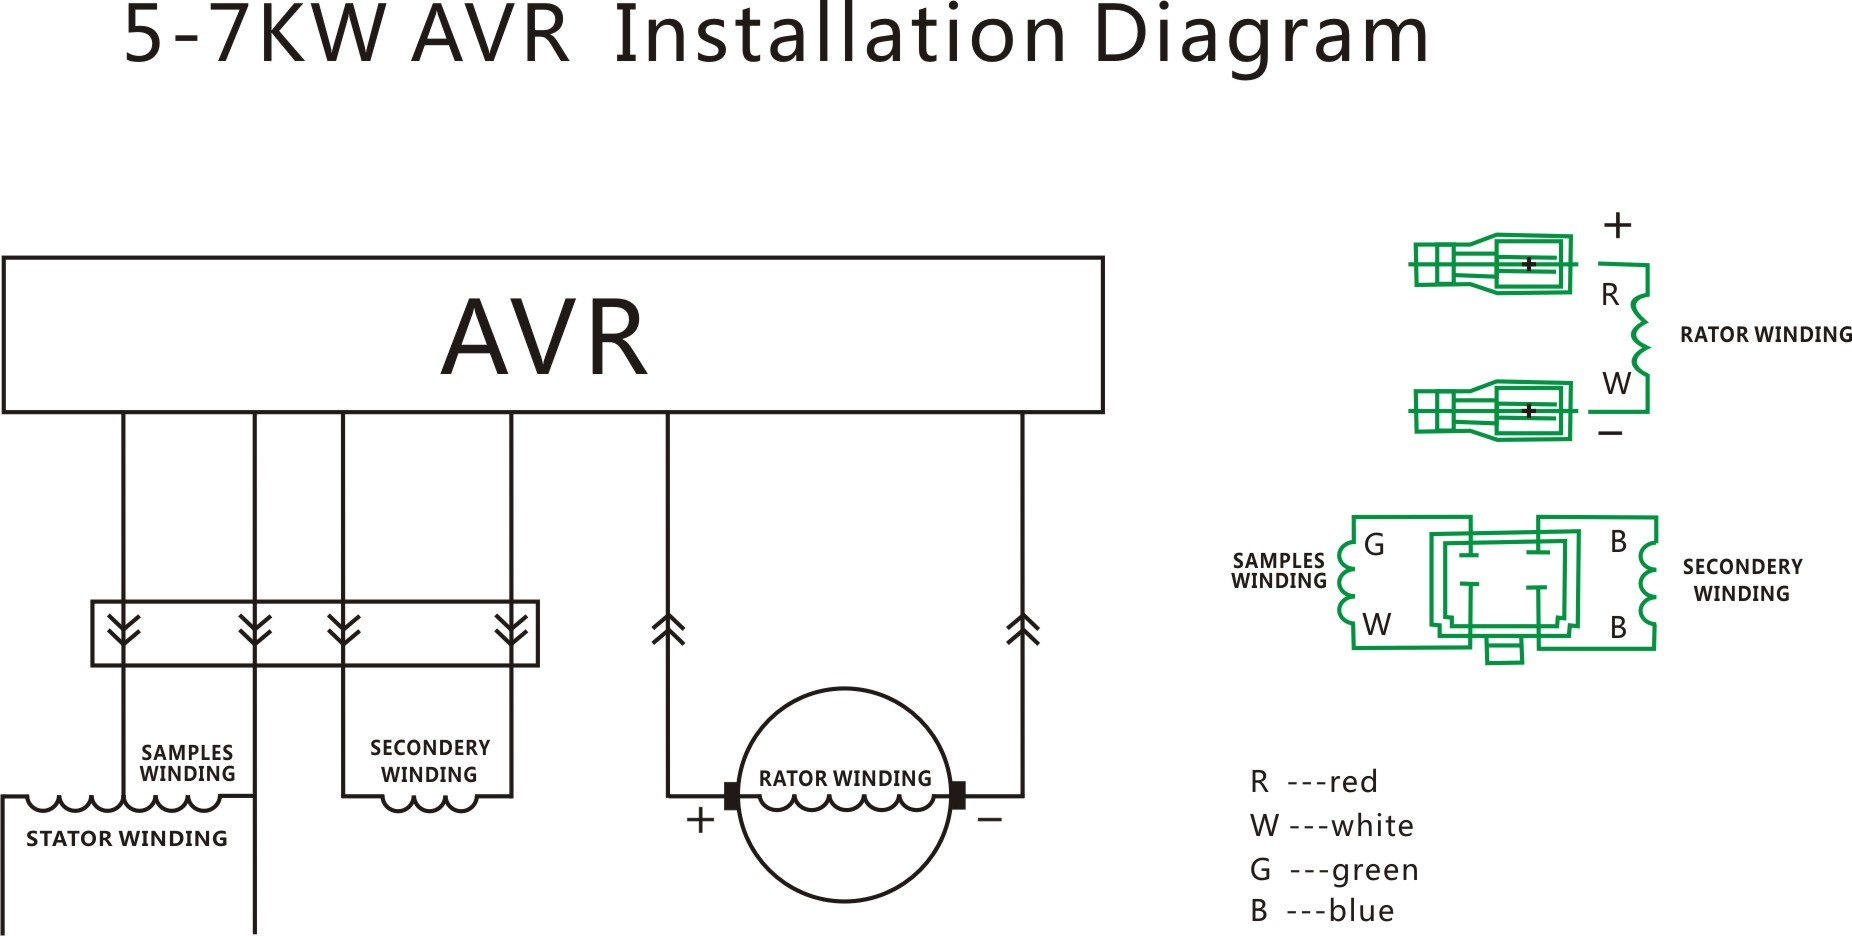 What Is 5 7kw Avr